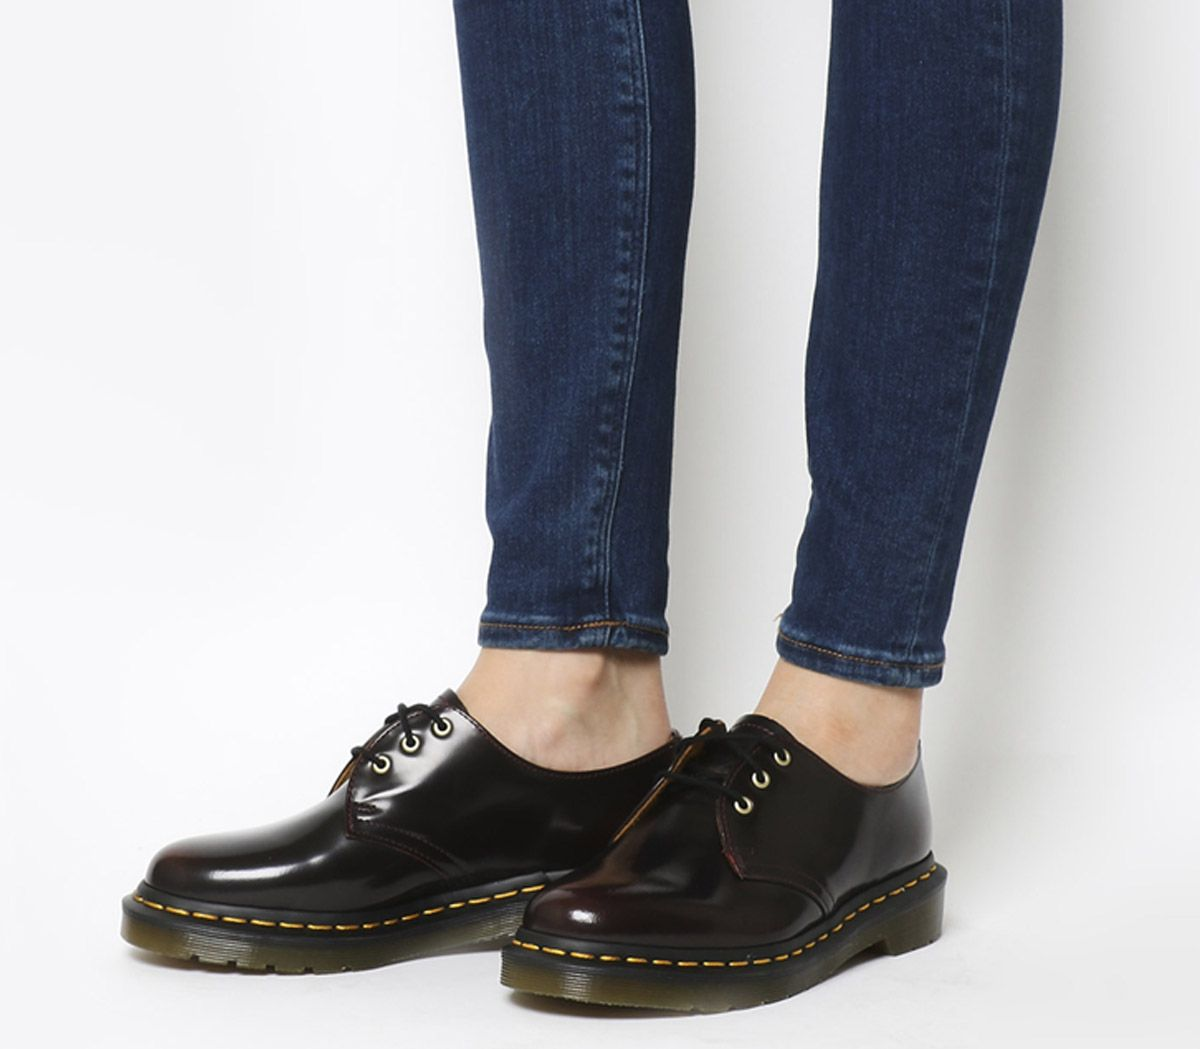 super popular de794 4e535 Dr. Martens 1416 Shoes Cherry Red - Flats